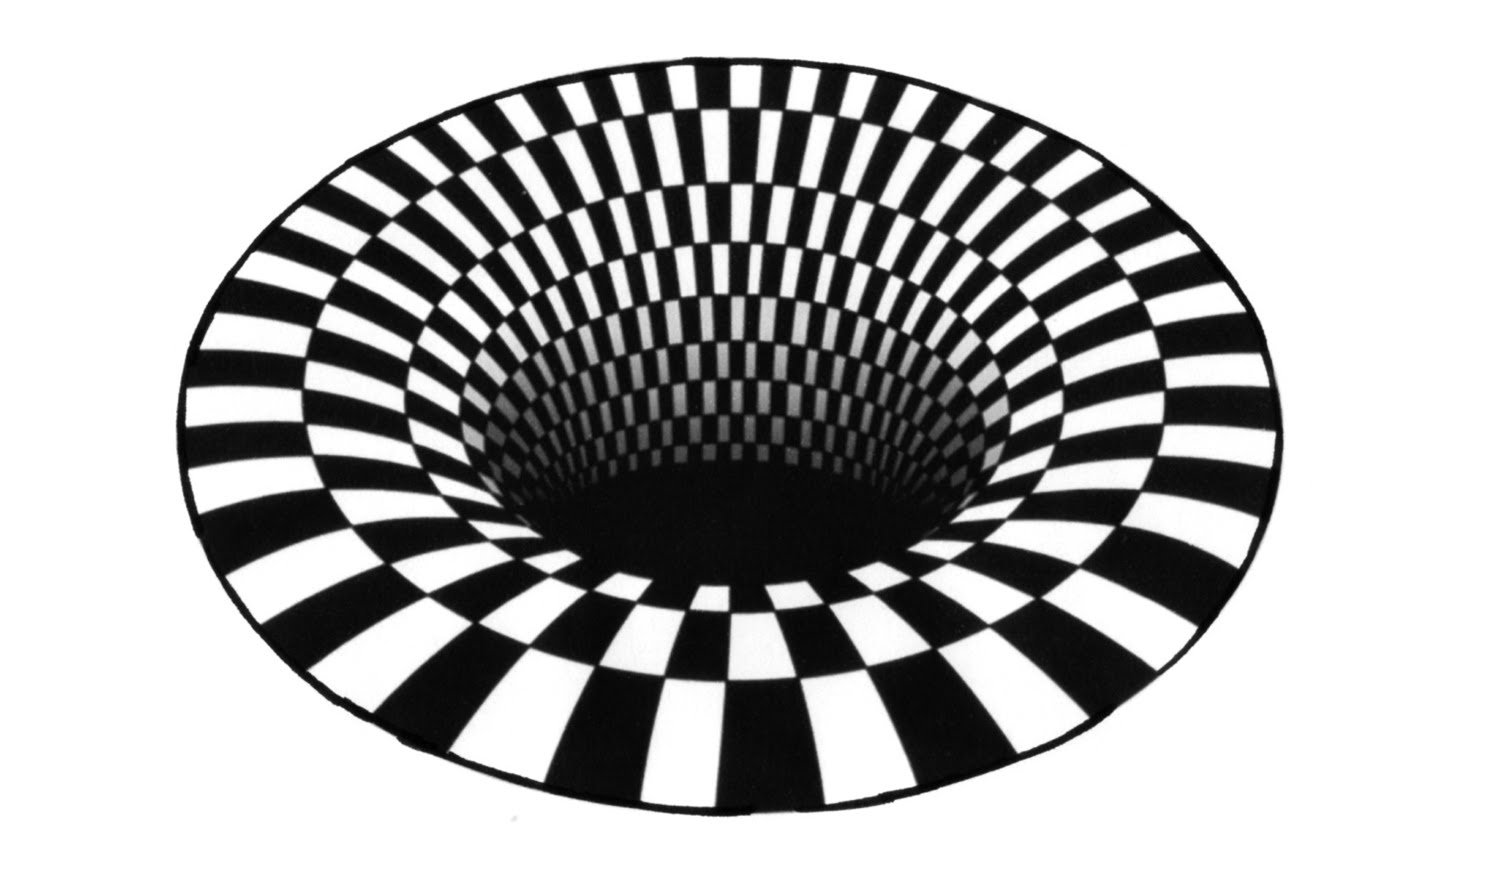 Illusion clipart vertigo A How 3D Draw to